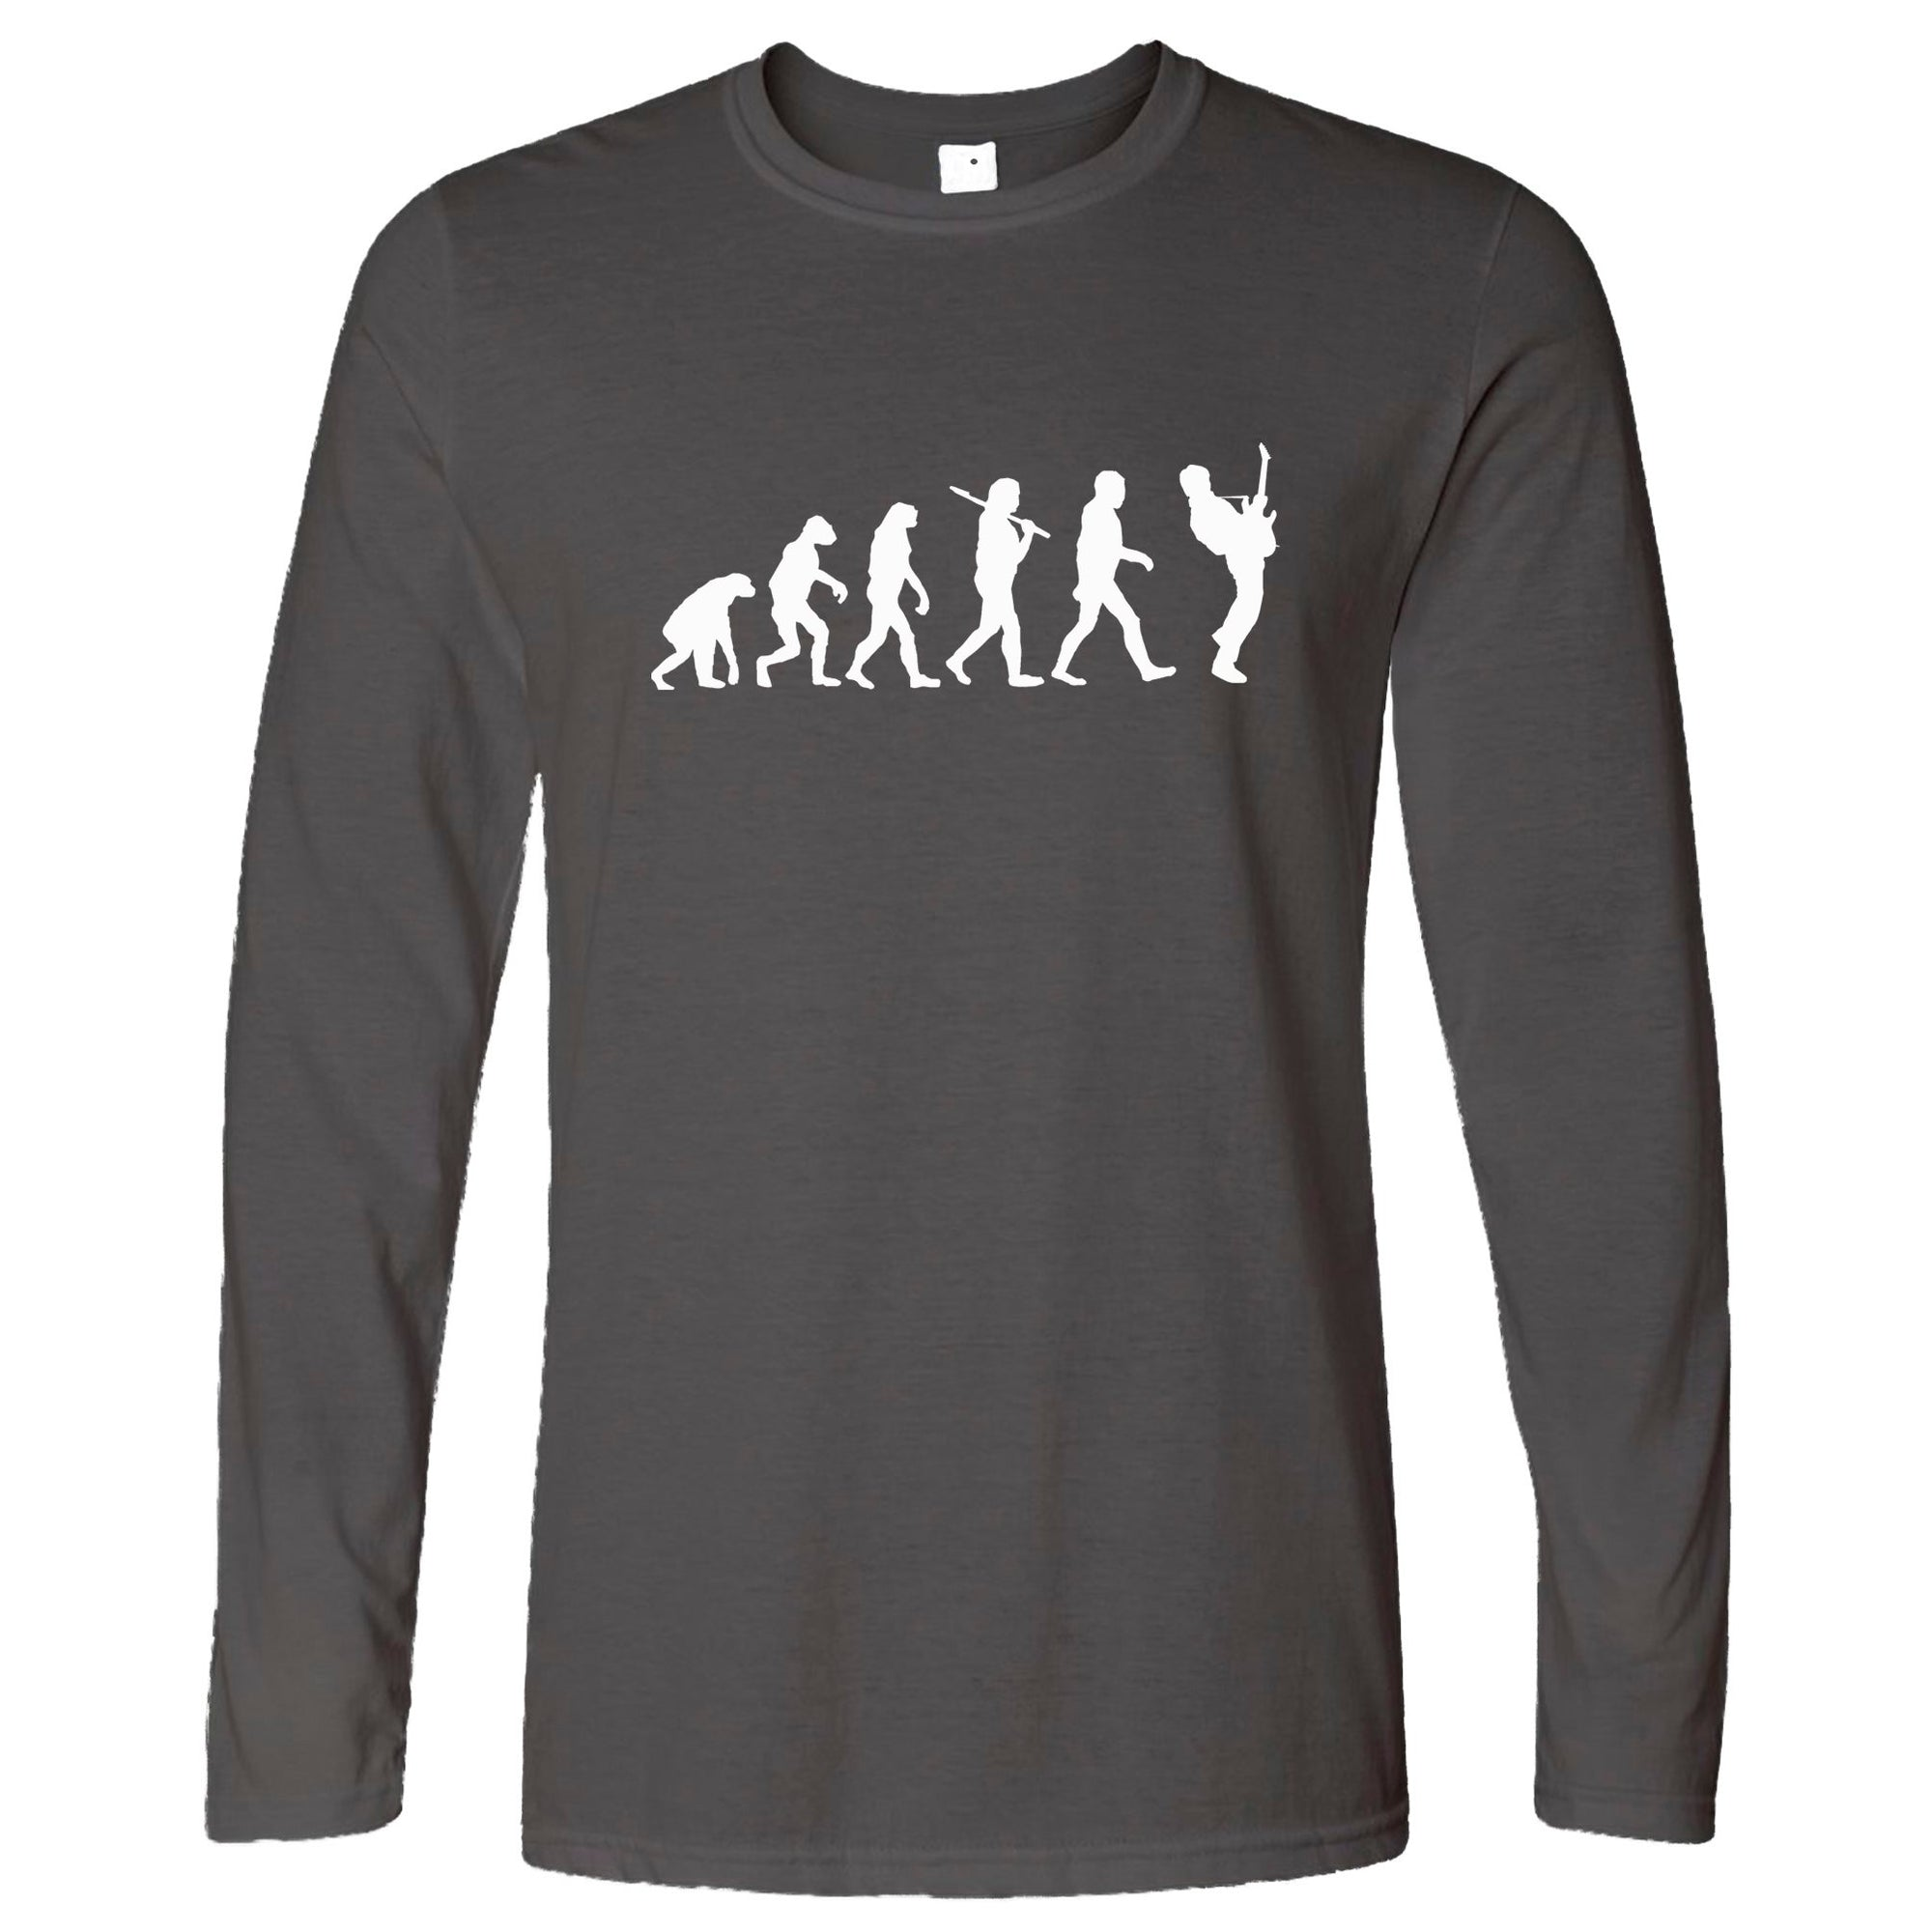 Musician Long Sleeve Evolution Of A Guitarist T-Shirt